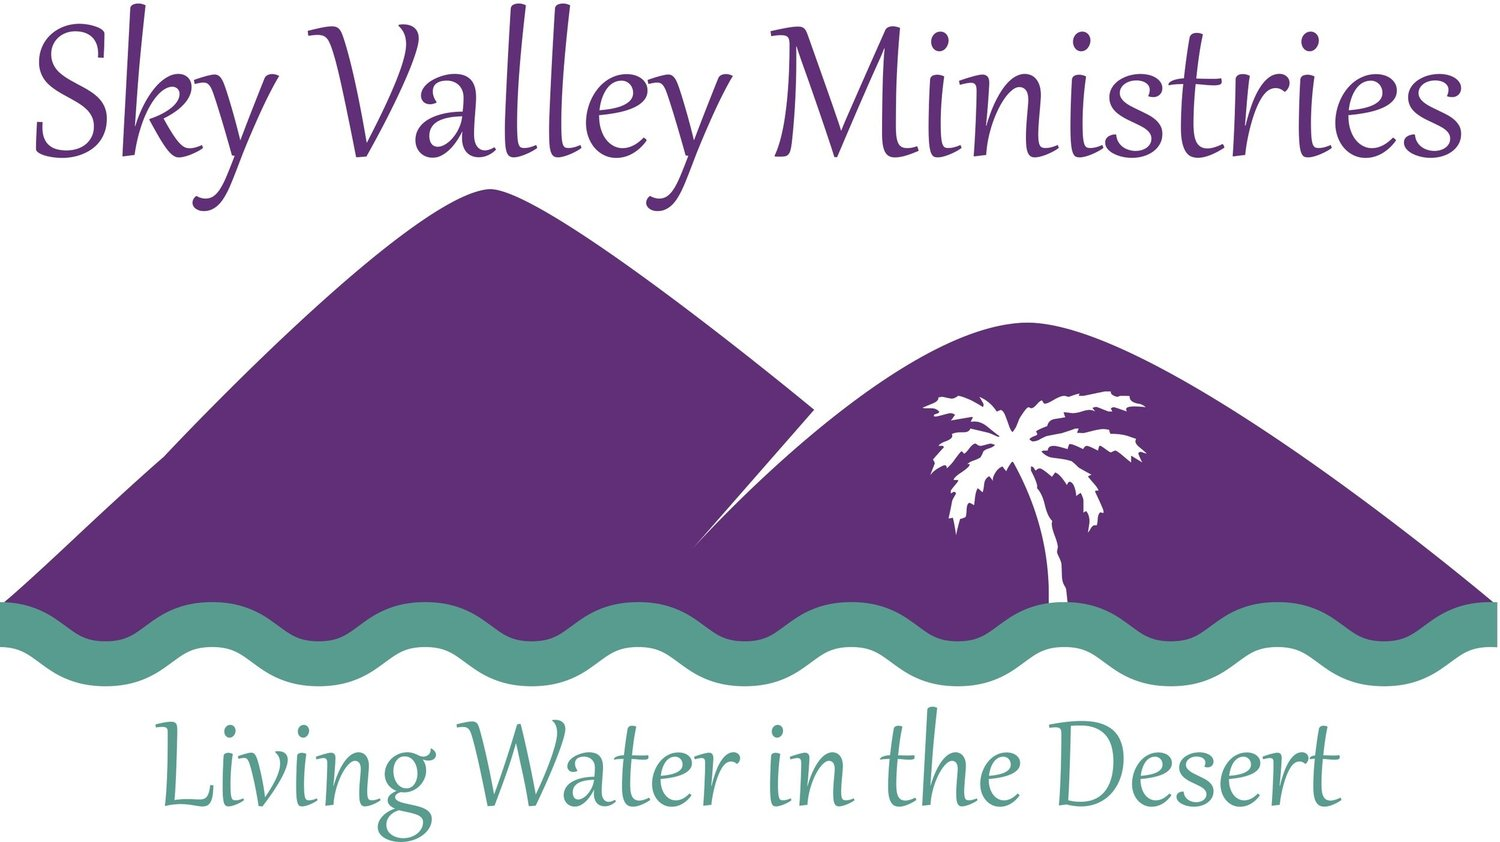 Sky Valley Ministries